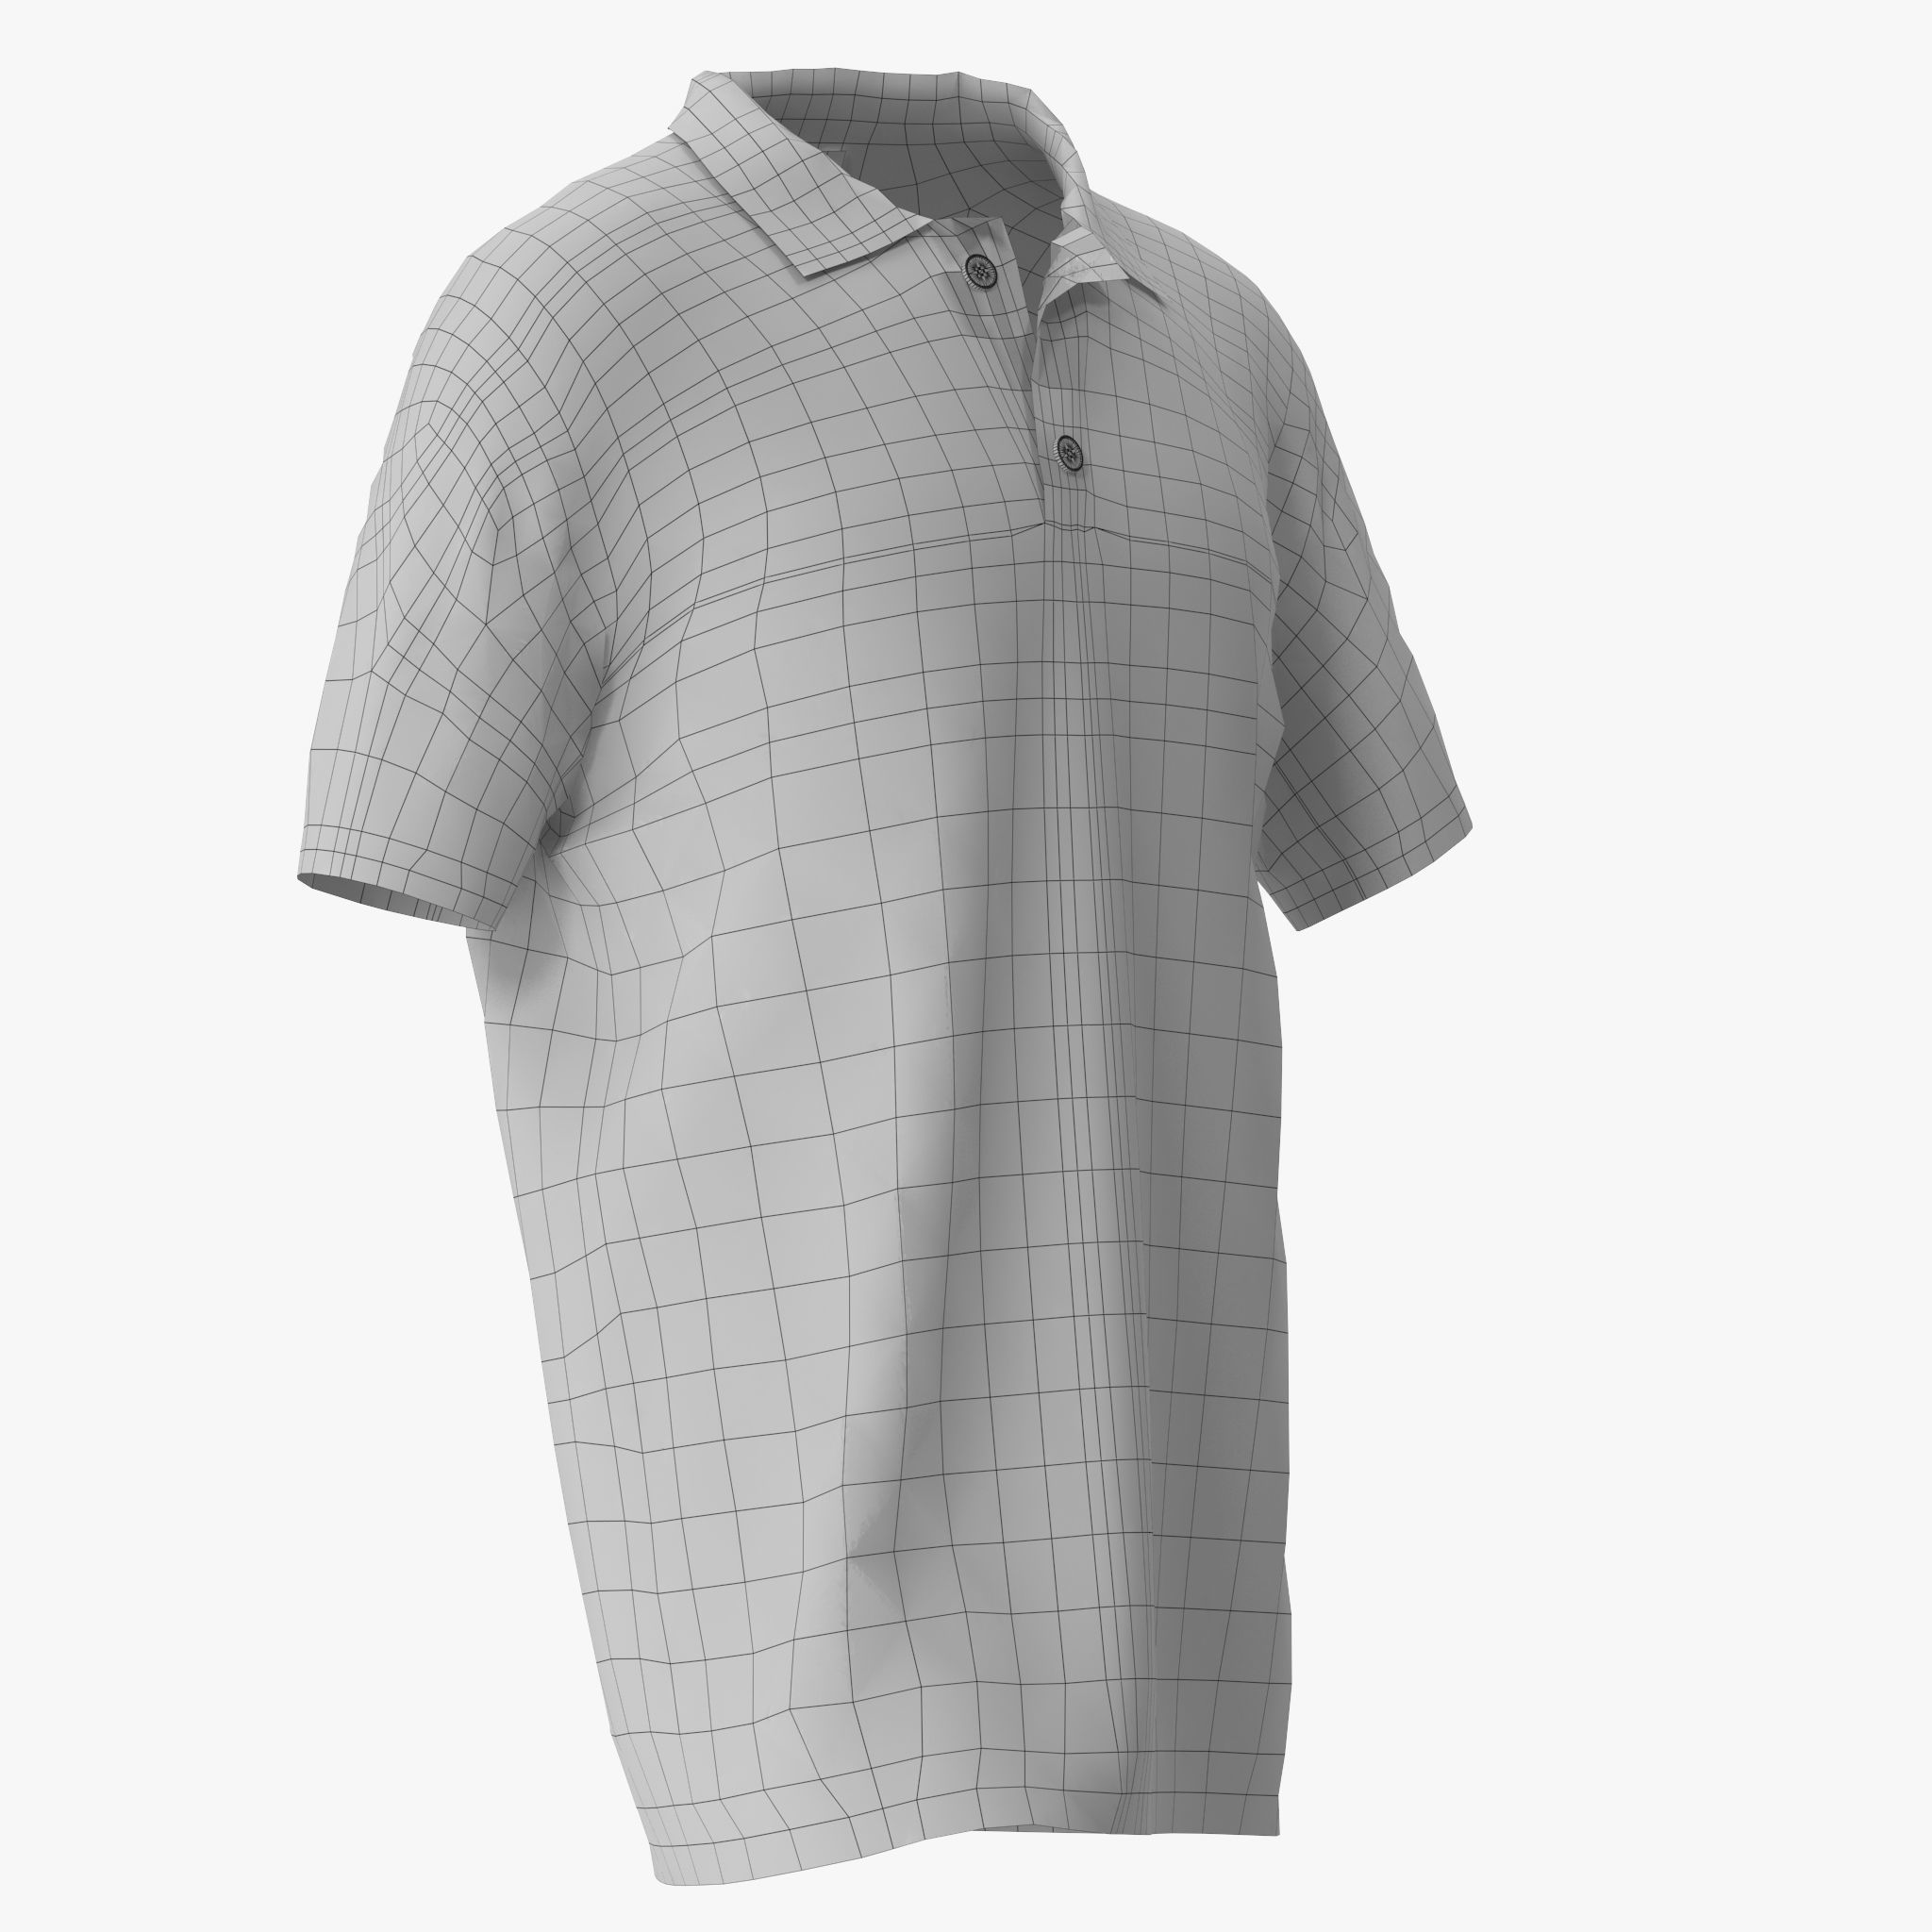 b87c16868a63 Lacoste T Shirts Price List